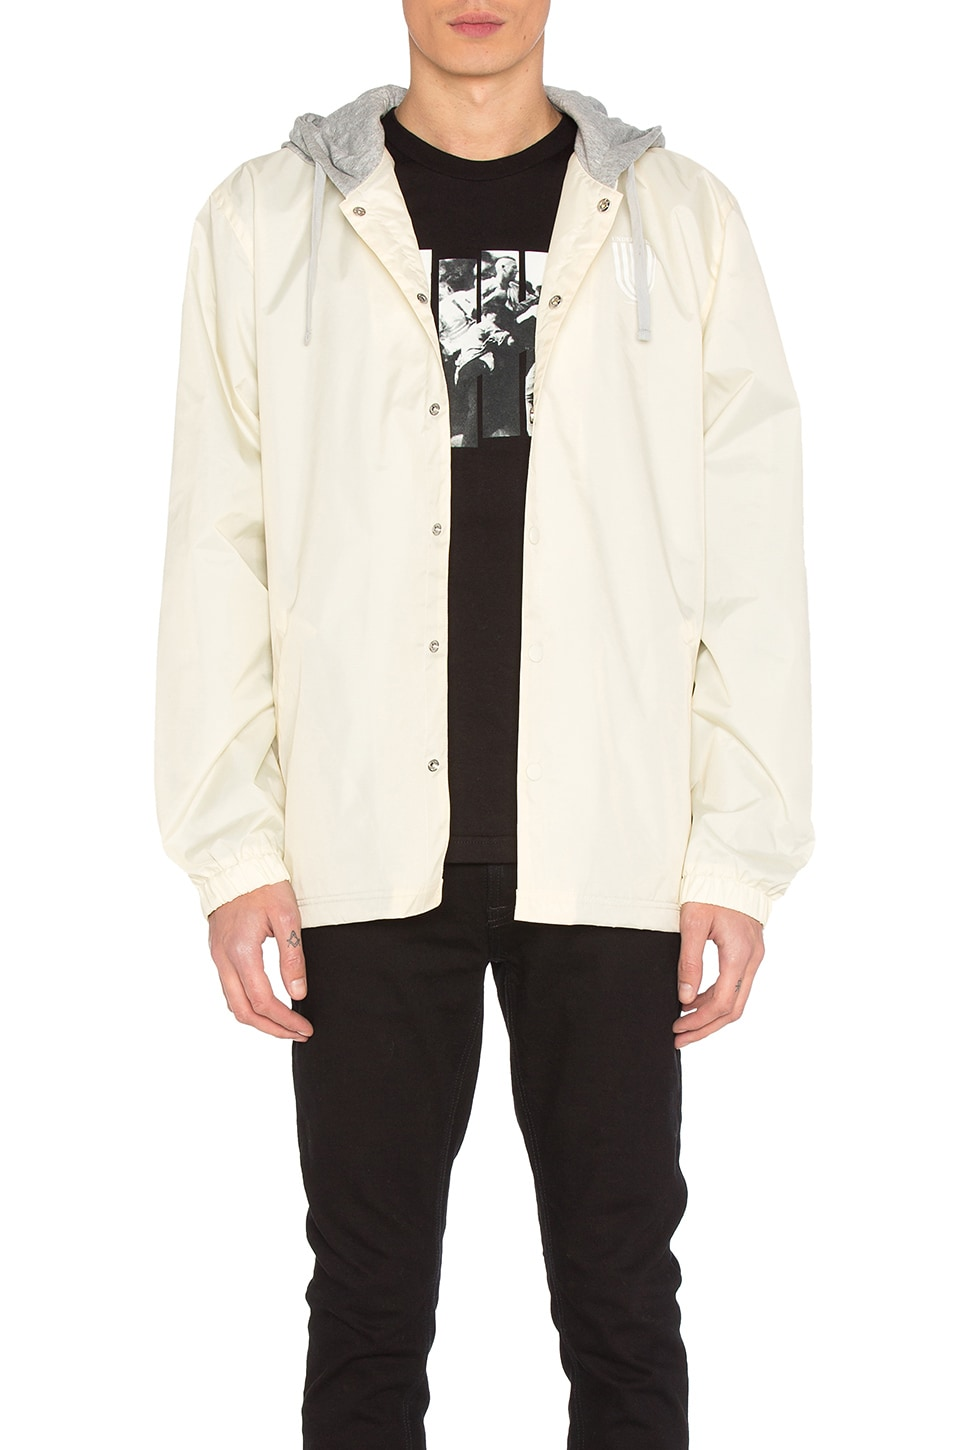 Hooded Coaches Jacket by Undefeated